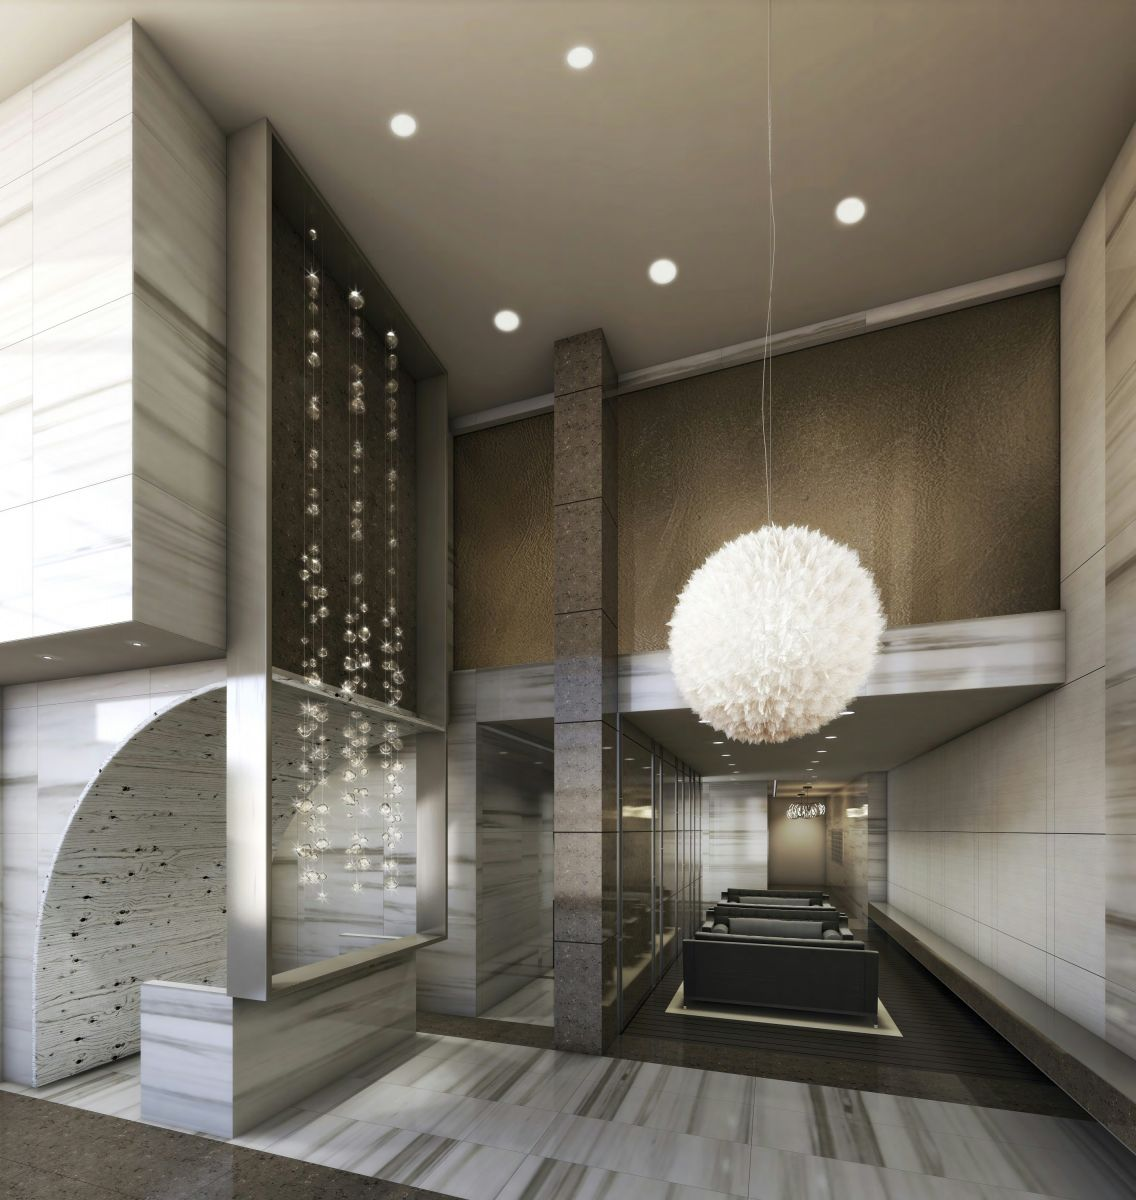 Cecconi Simone Project re Hotel & Residences